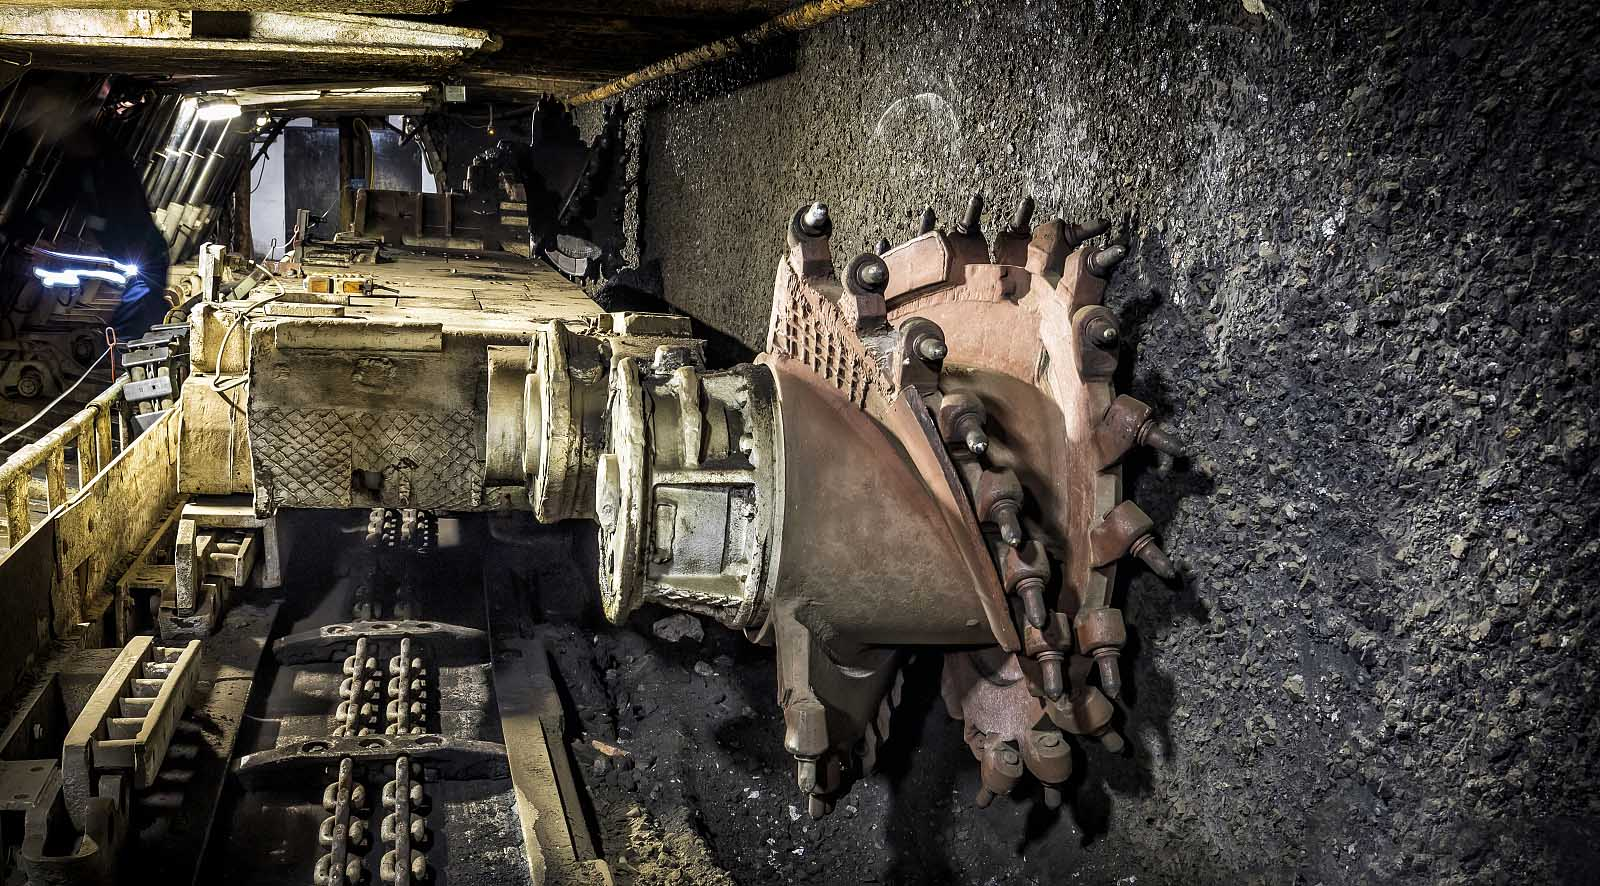 longwall-mining-by-HOT-Mining-4.jpg